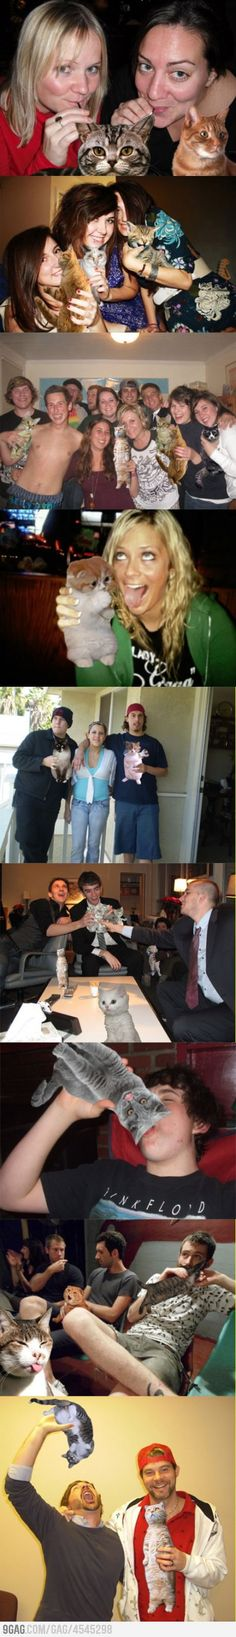 How to properly hide alcohol in your Facebook pictures #cat #alcohol